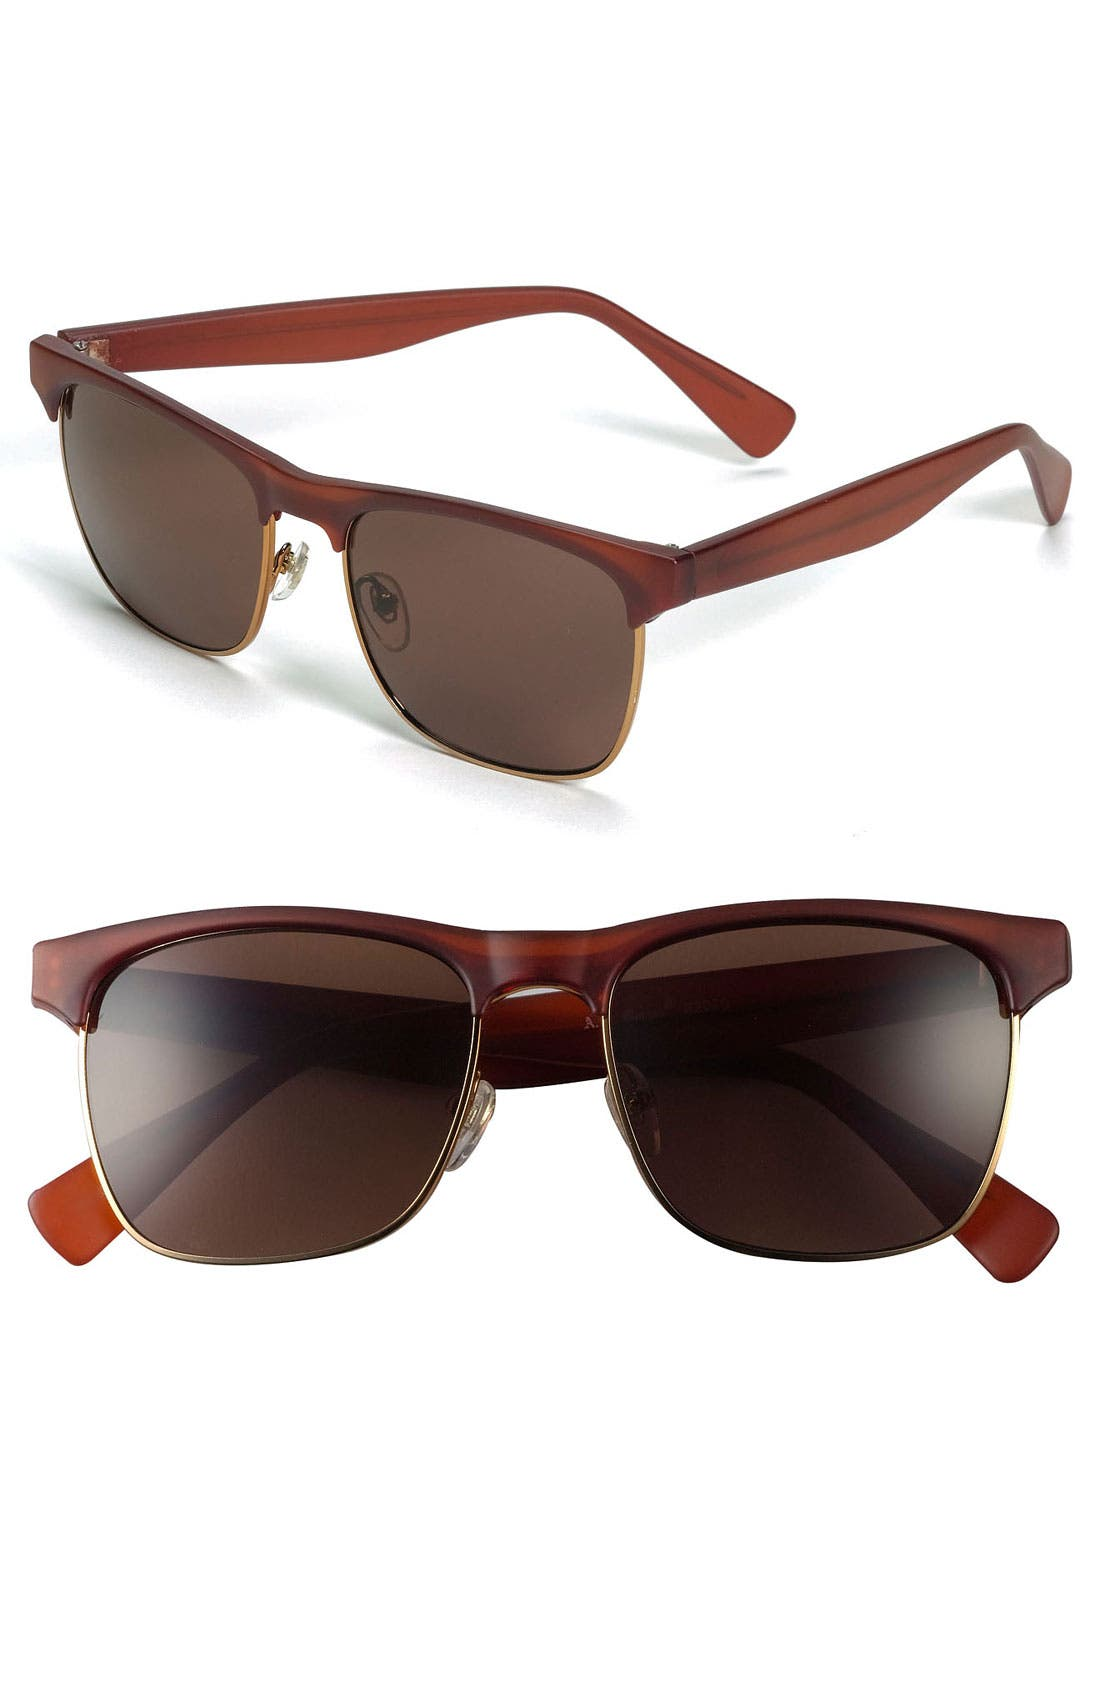 Main Image - A.J. Morgan 55mm 'Felix' Sunglasses